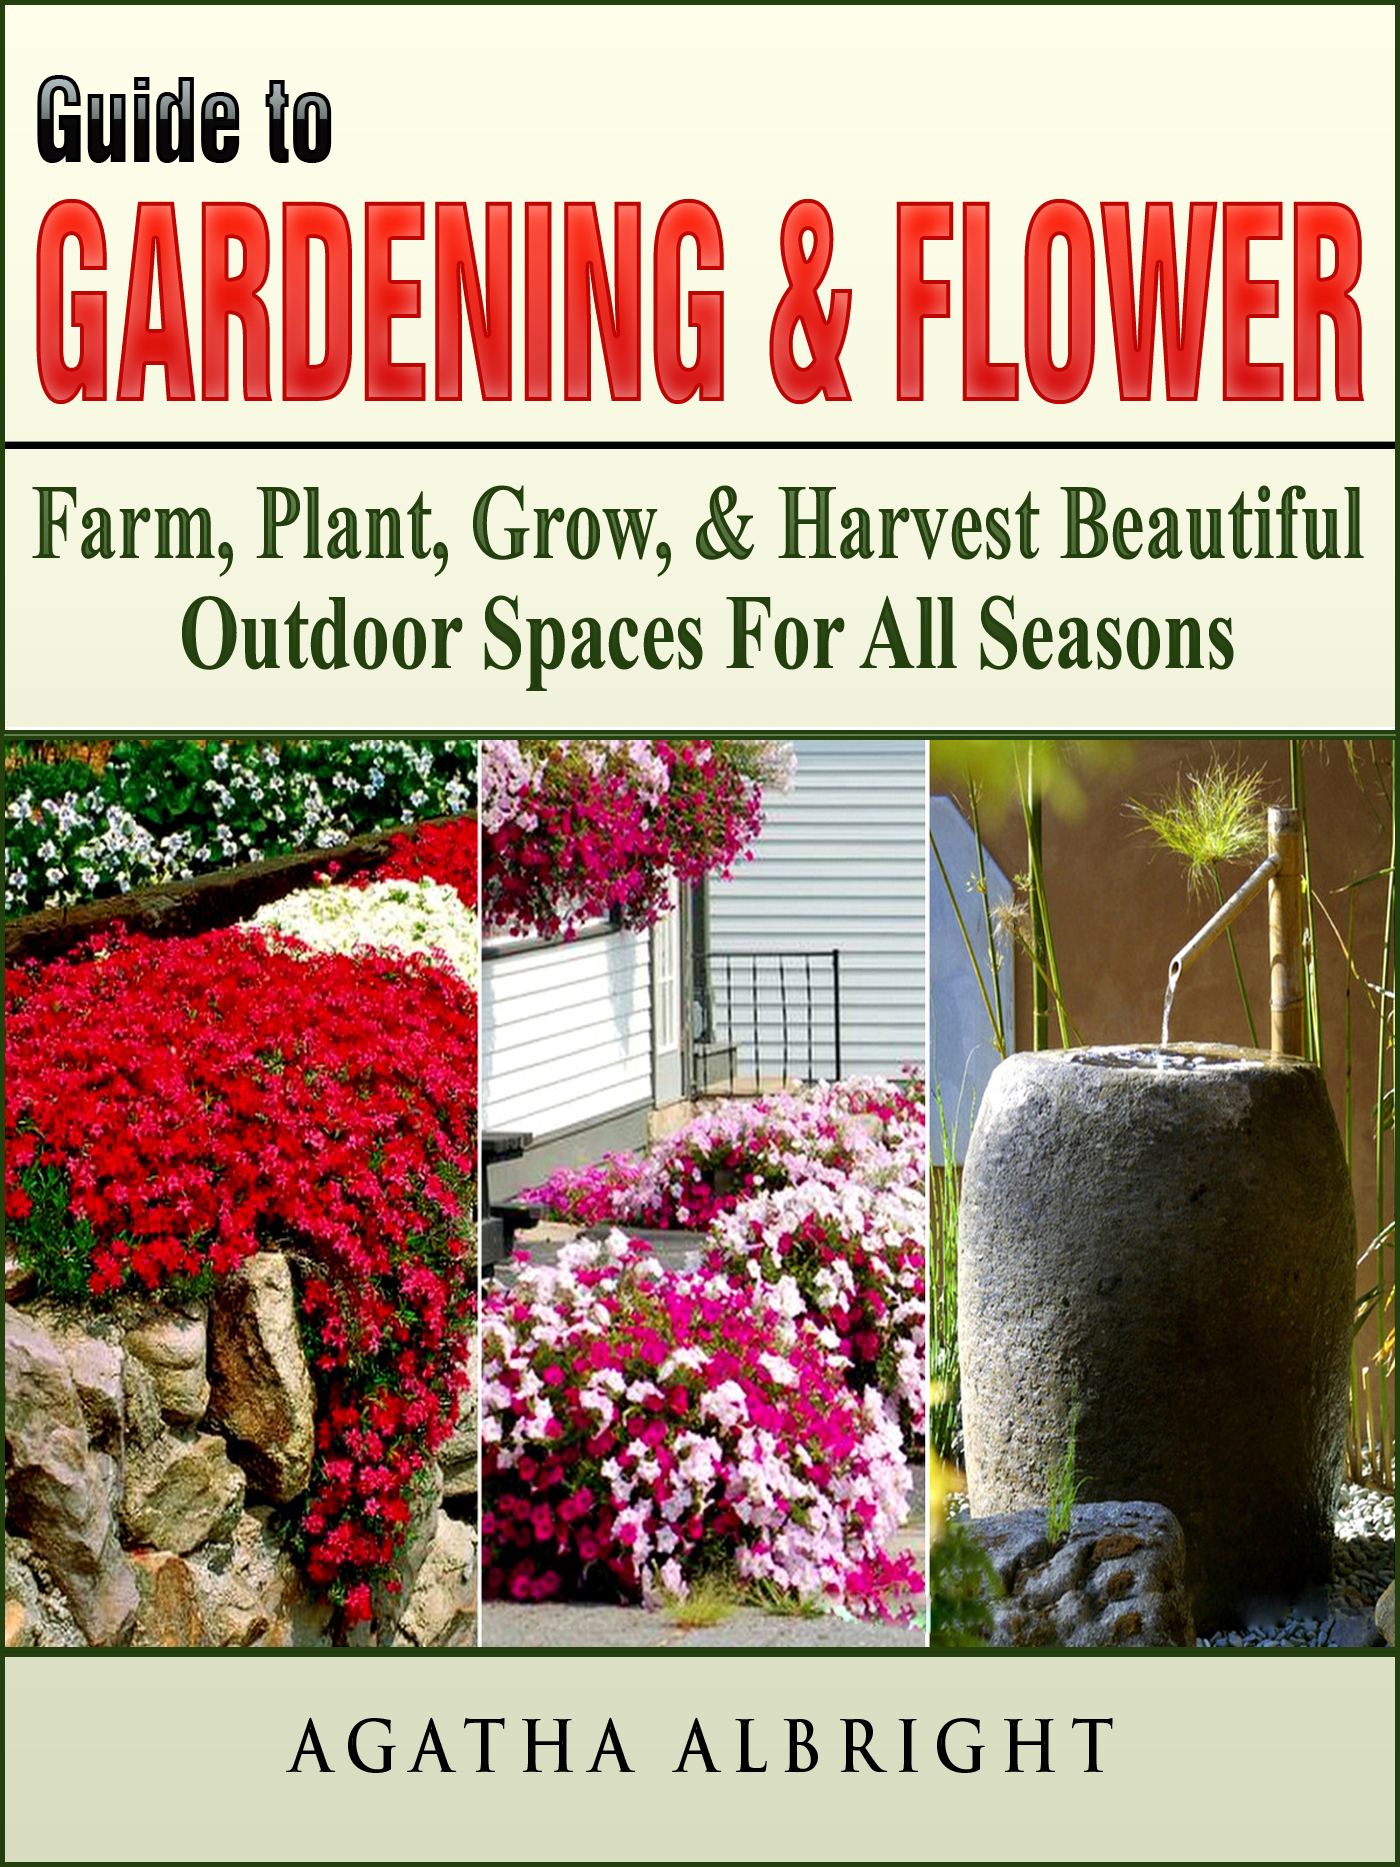 Guide to gardening & flowers: farm, plant, grow, & harvest beautiful outdoor spaces for all seasons